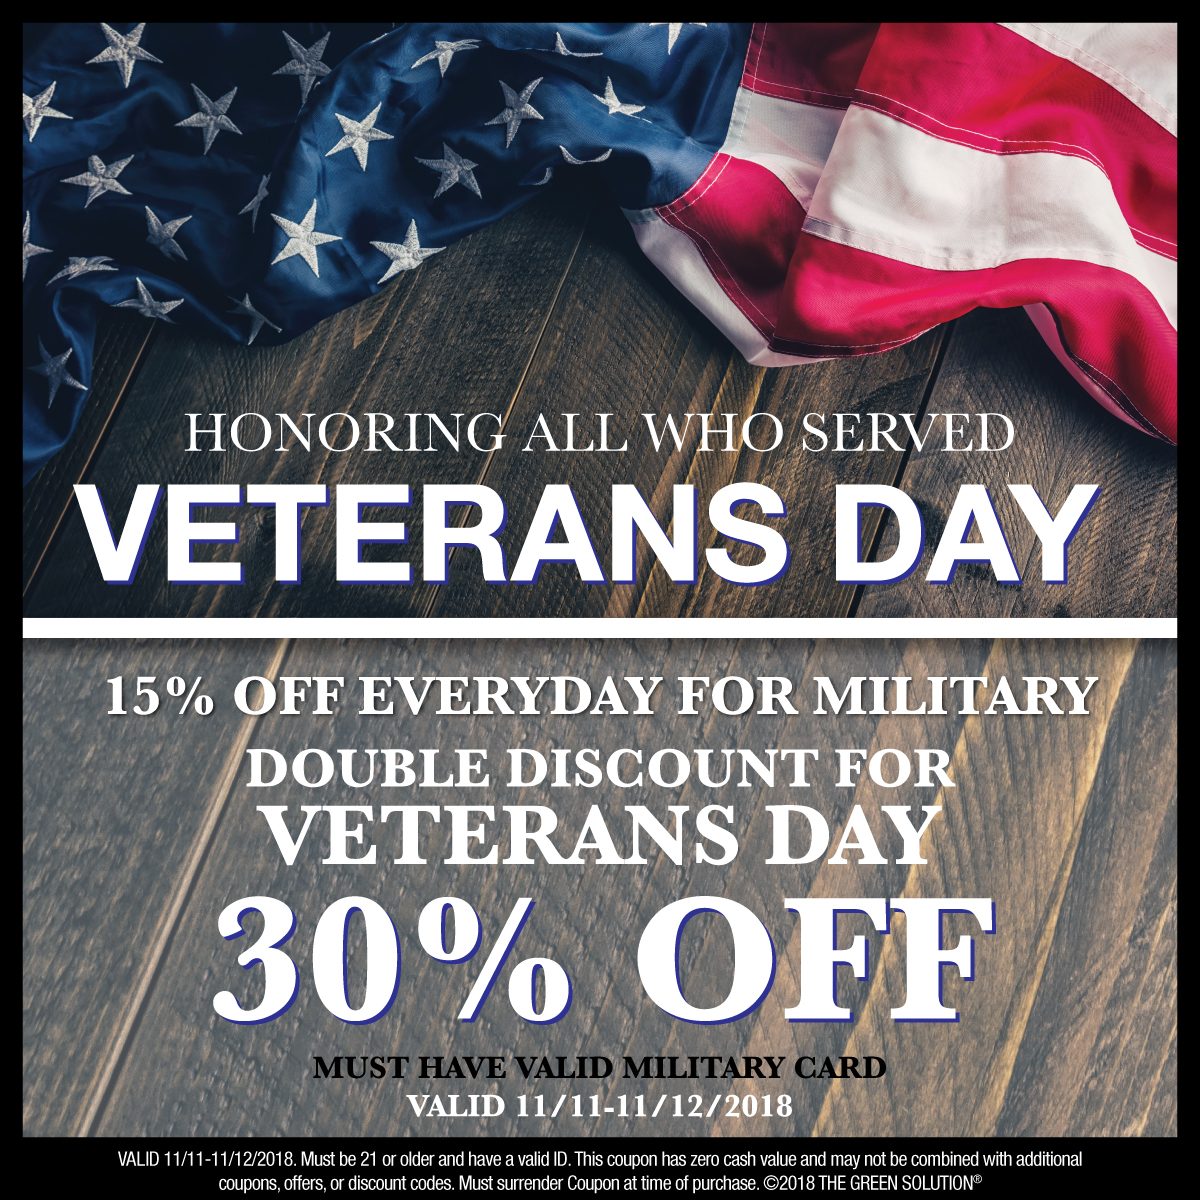 In Honor of Veterans Day - 30% Off at The Green Solution Nov 11-12, 2018